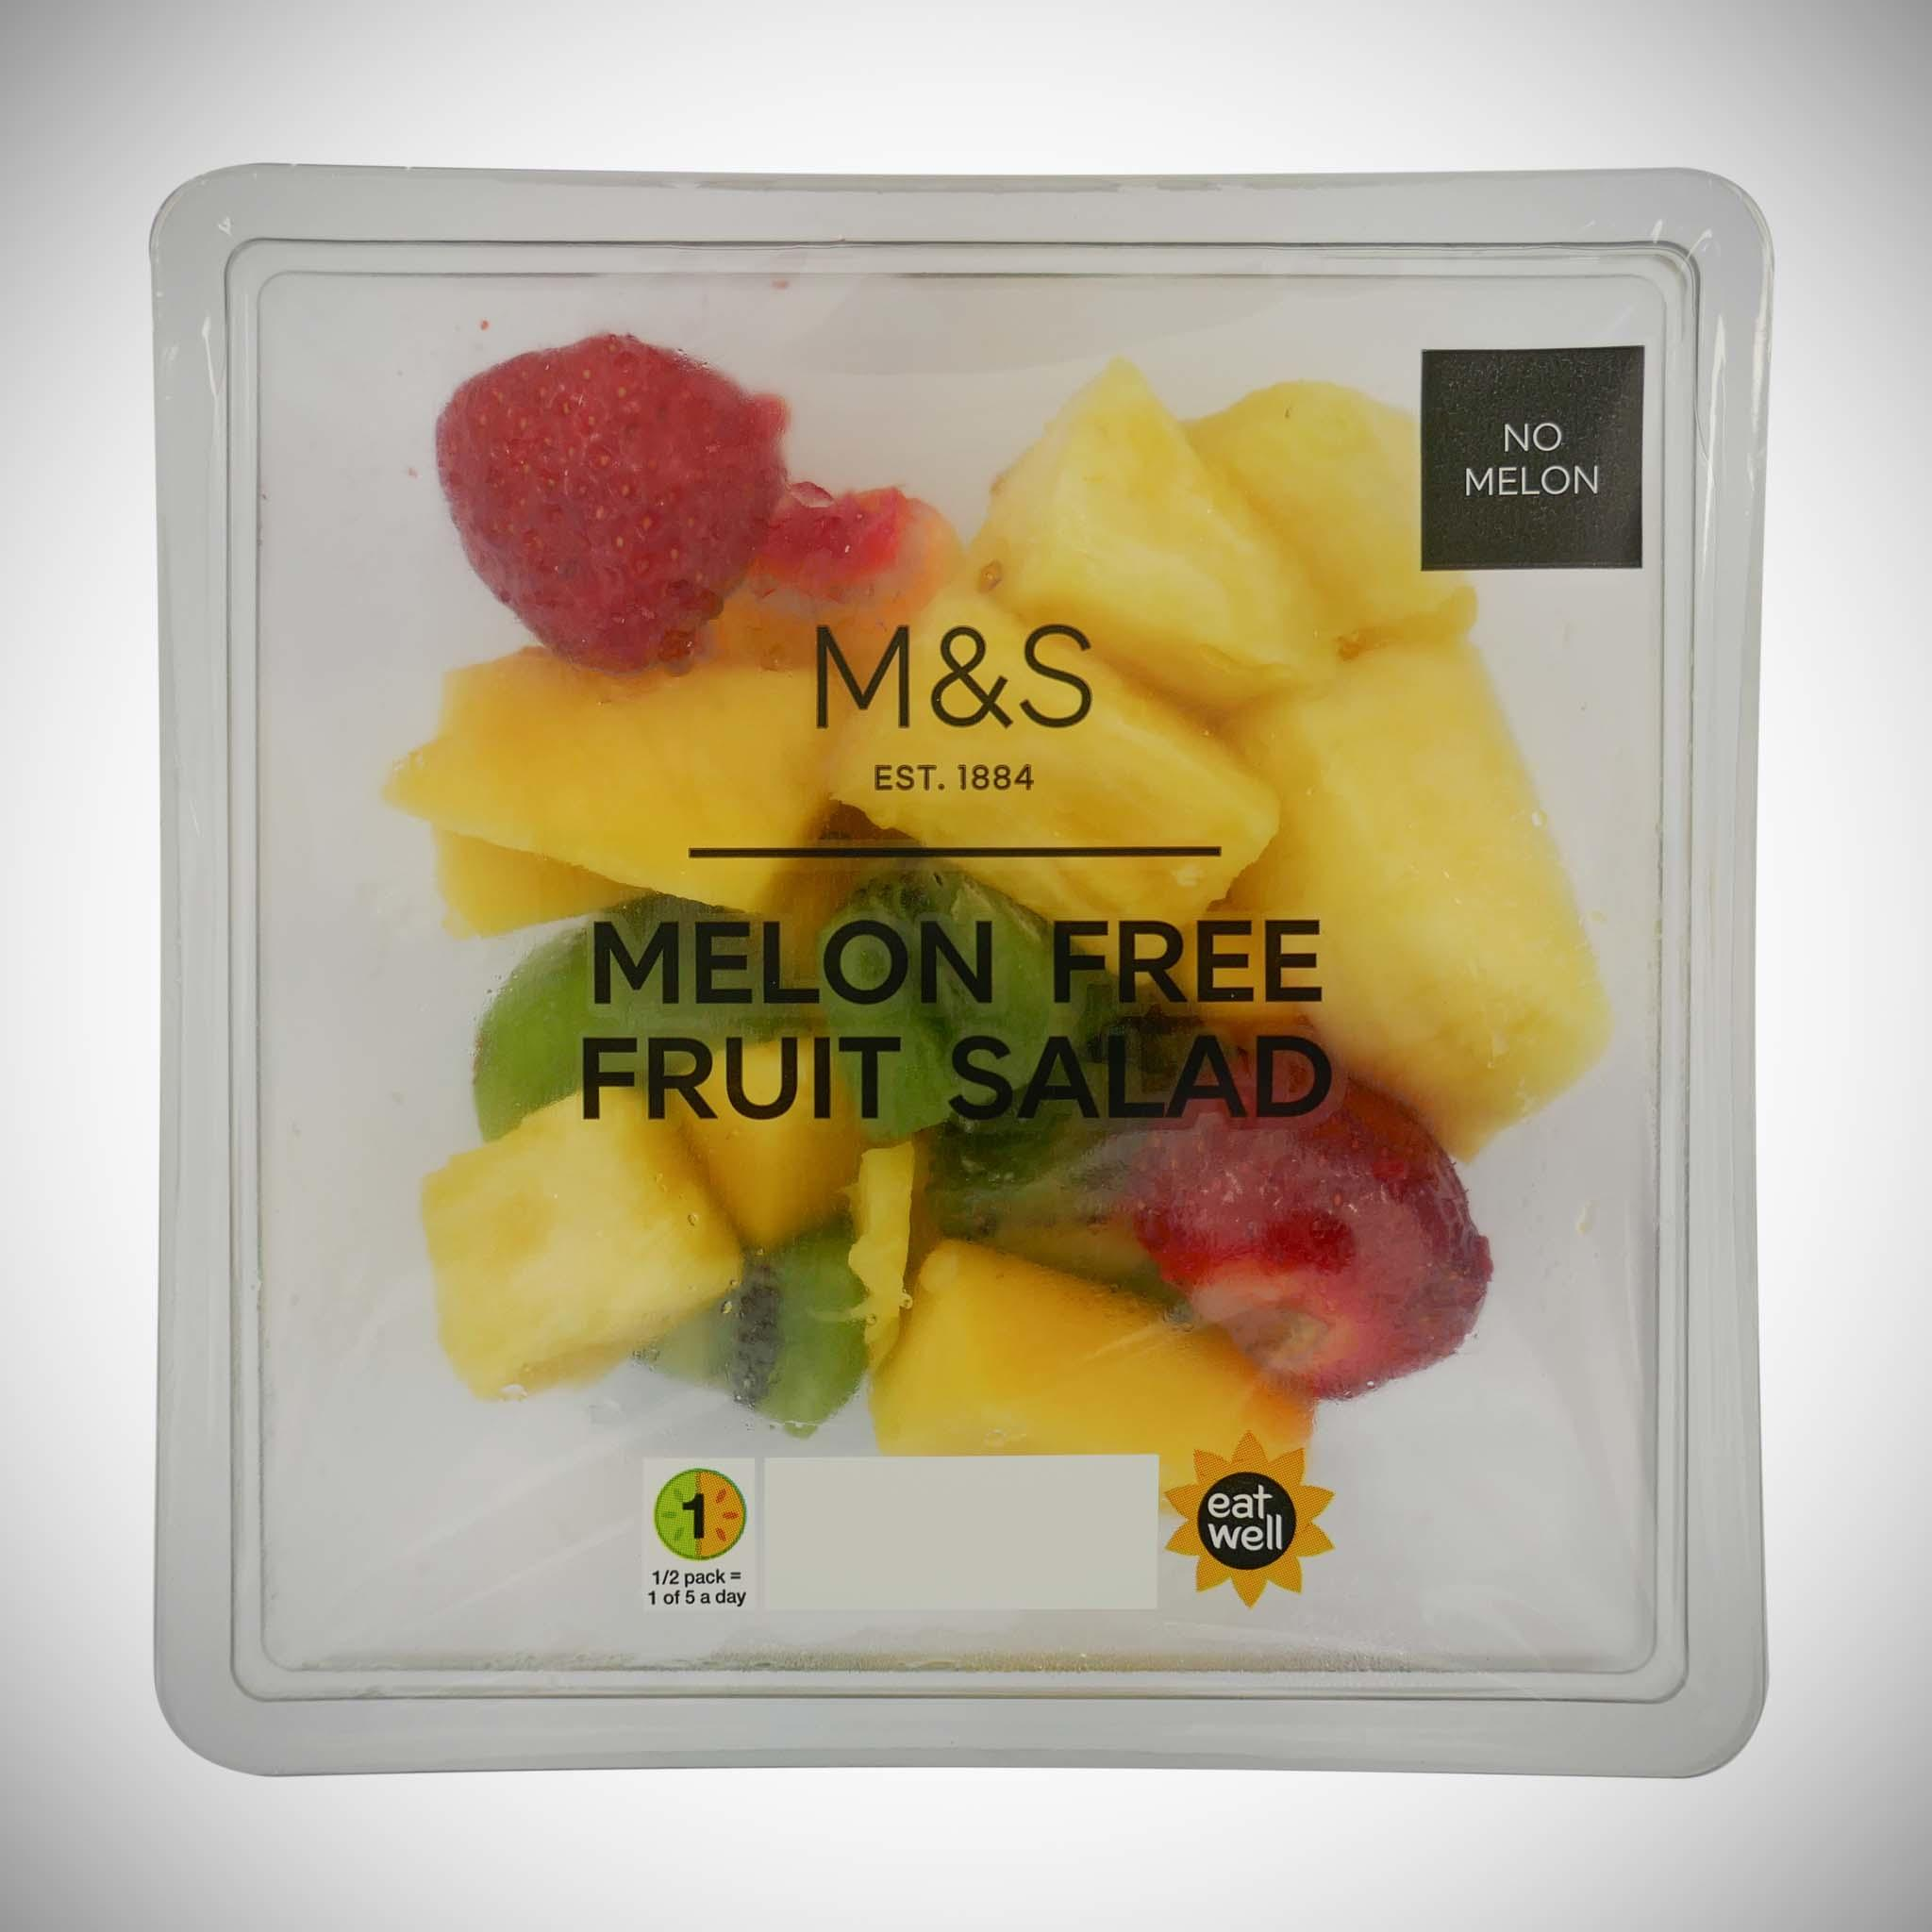 Melon Free Fruit Salad 310g